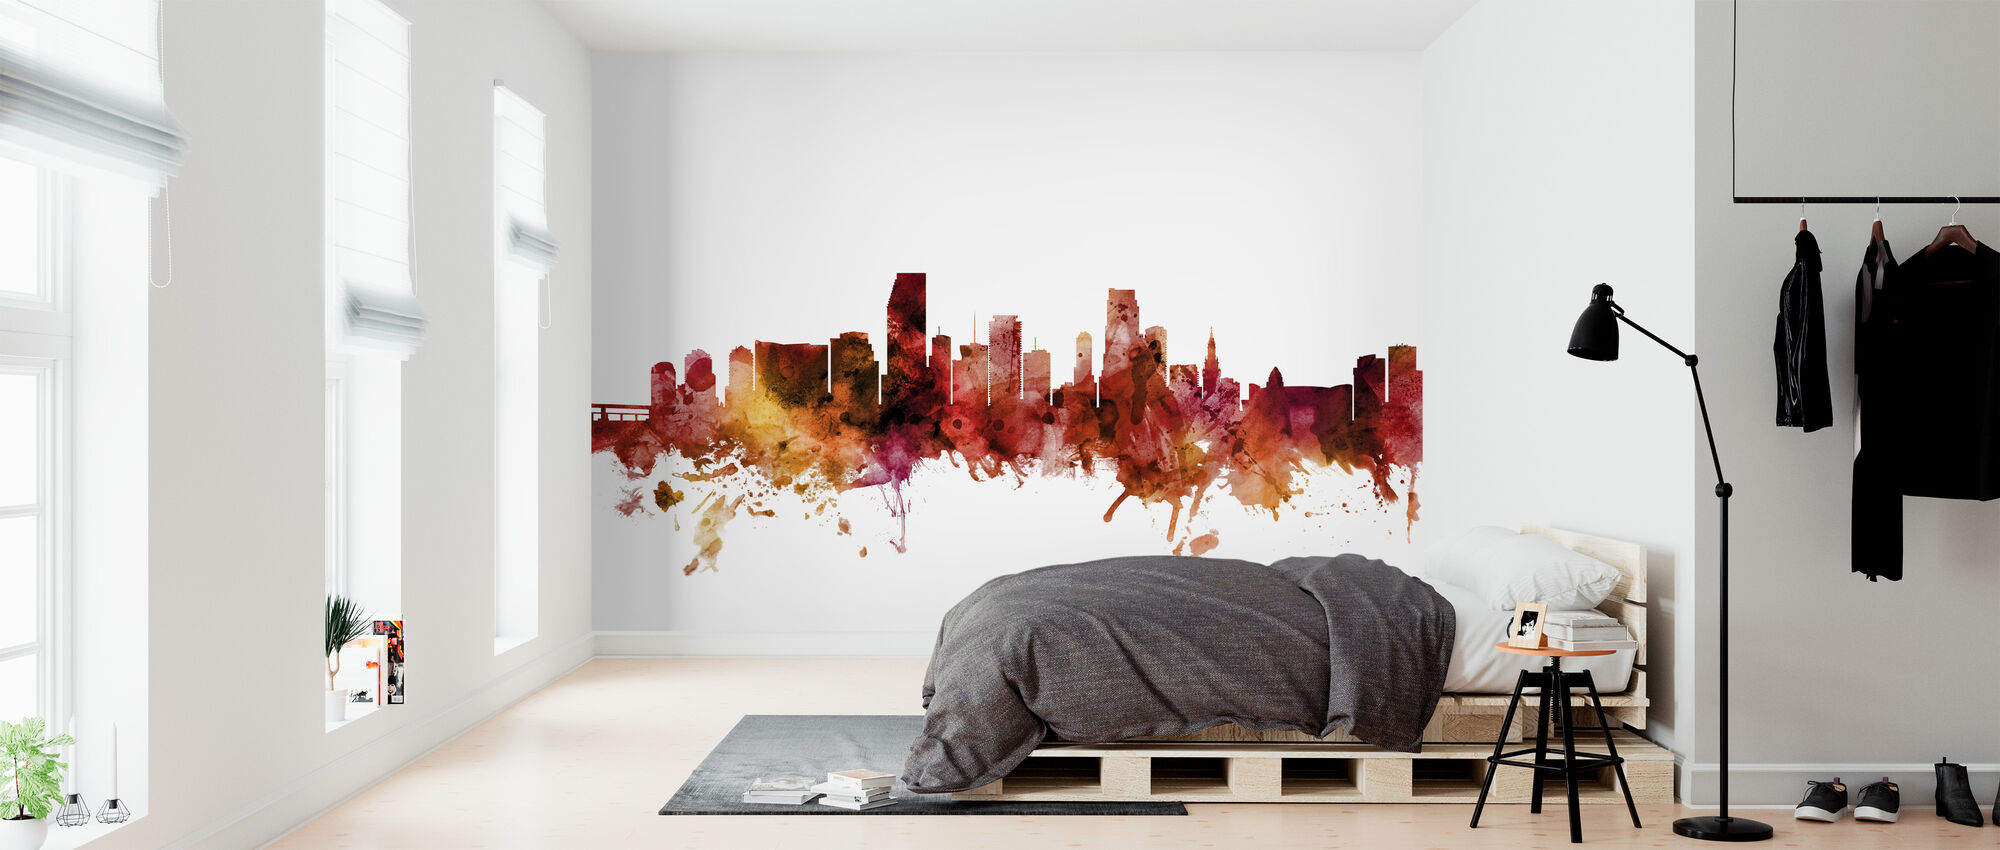 Miami Florida Skyline - Wallpaper - Bedroom